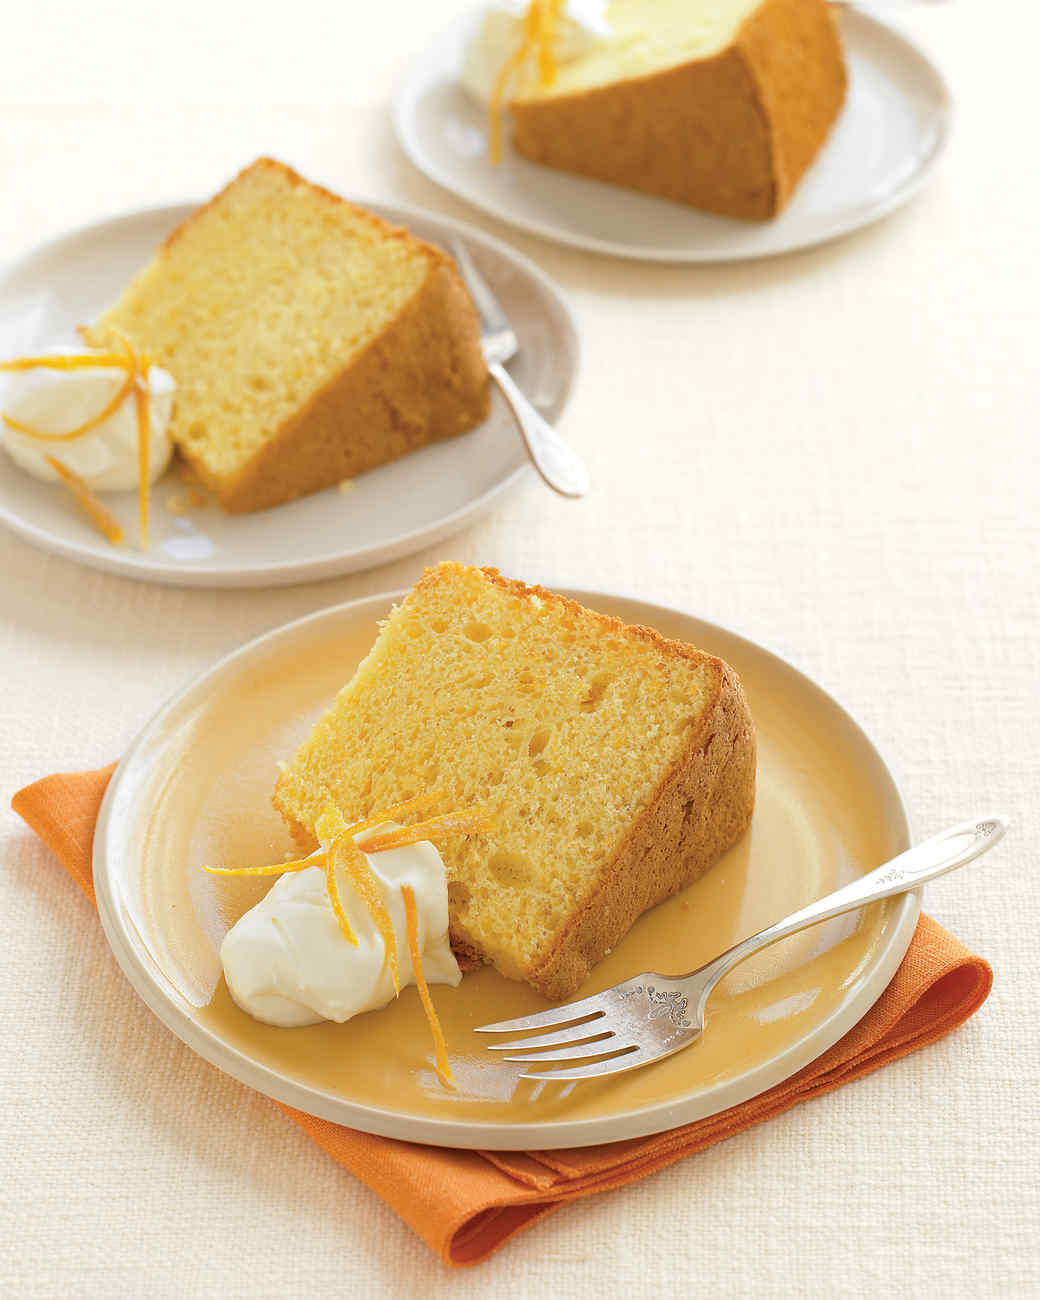 Orange Chiffon Cake with Vanilla Whipped Cream